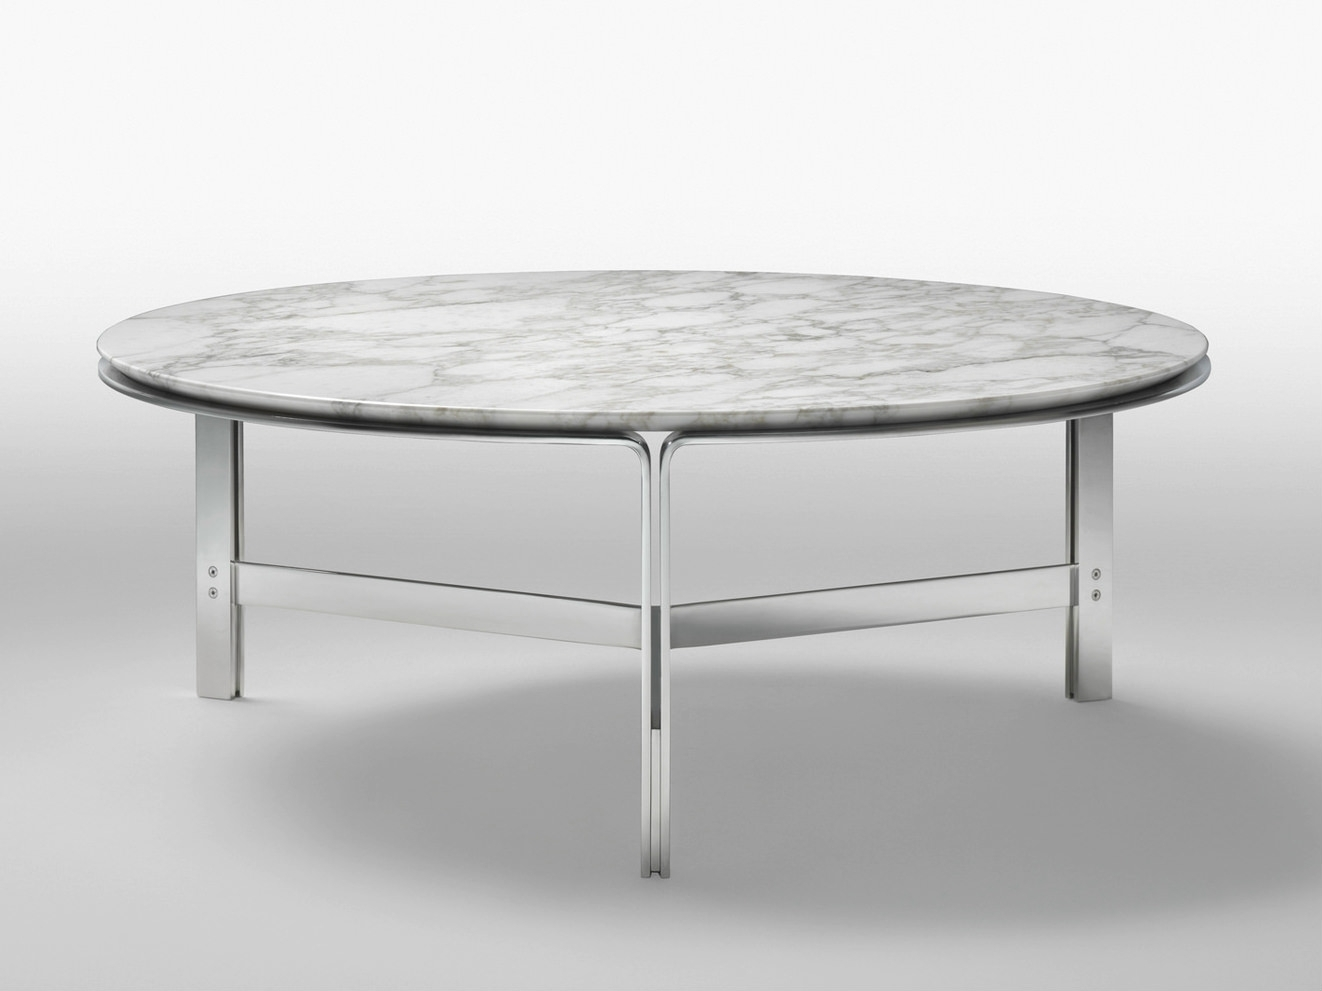 Large Round Marble Coffee Table | Sushi Ichimura Decor : Ideas Of A Inside Smart Round Marble Brass Coffee Tables (View 18 of 30)